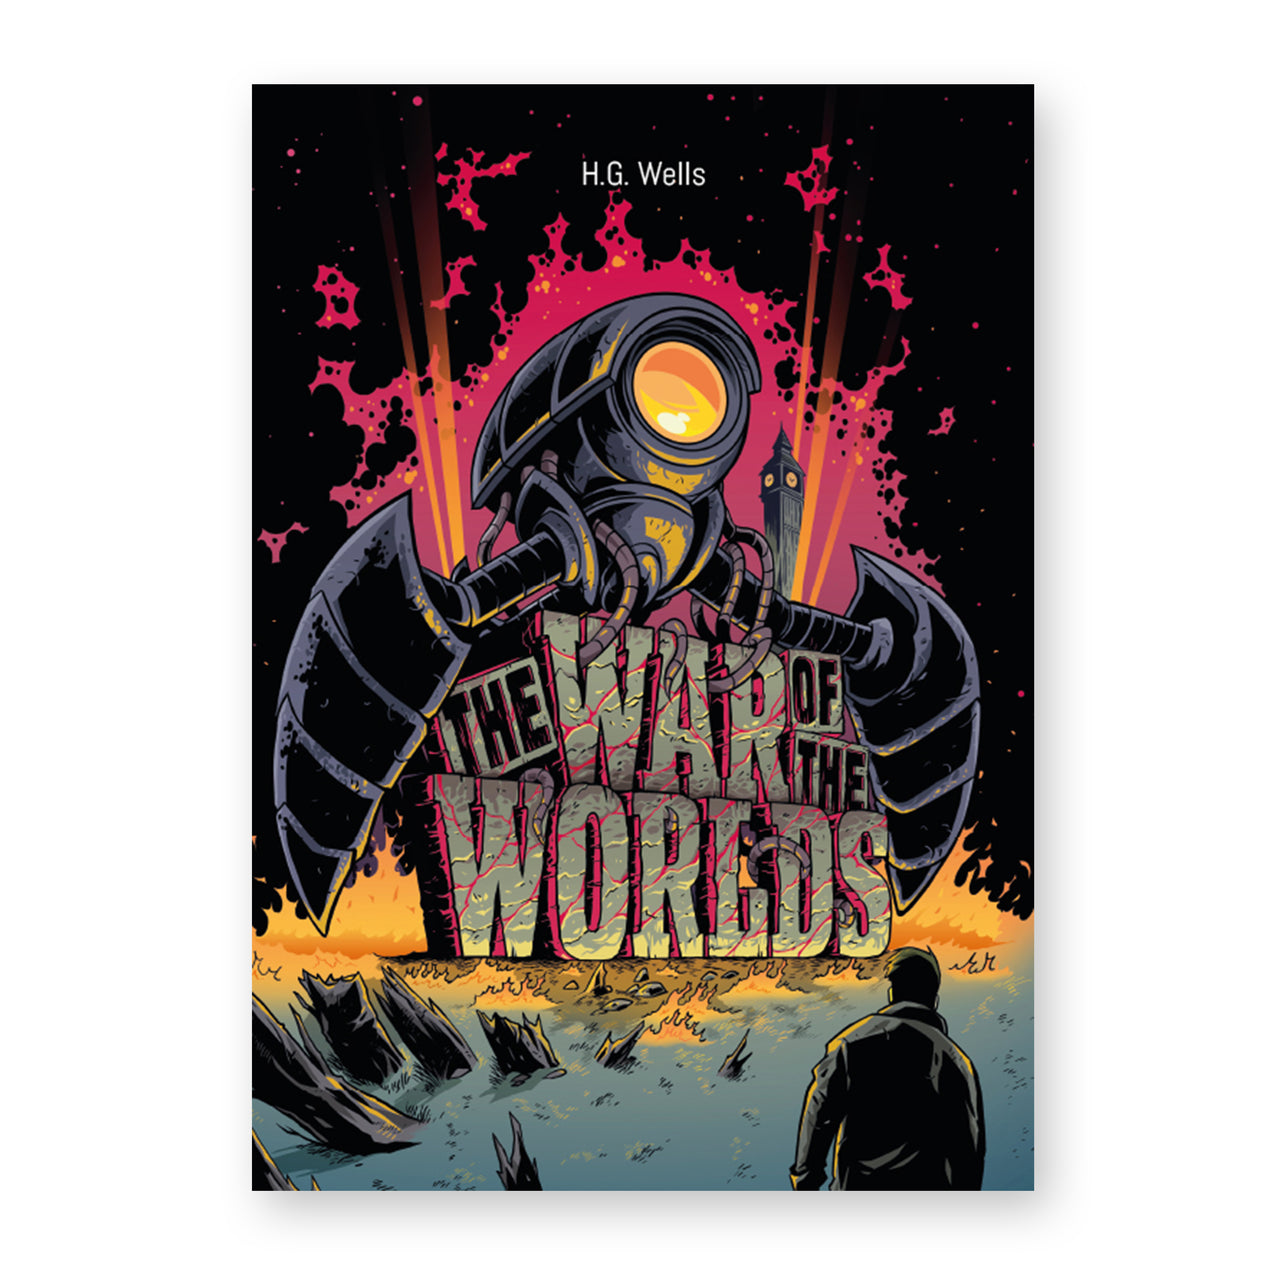 H.G. Wells: The War of the Worlds Illustrated